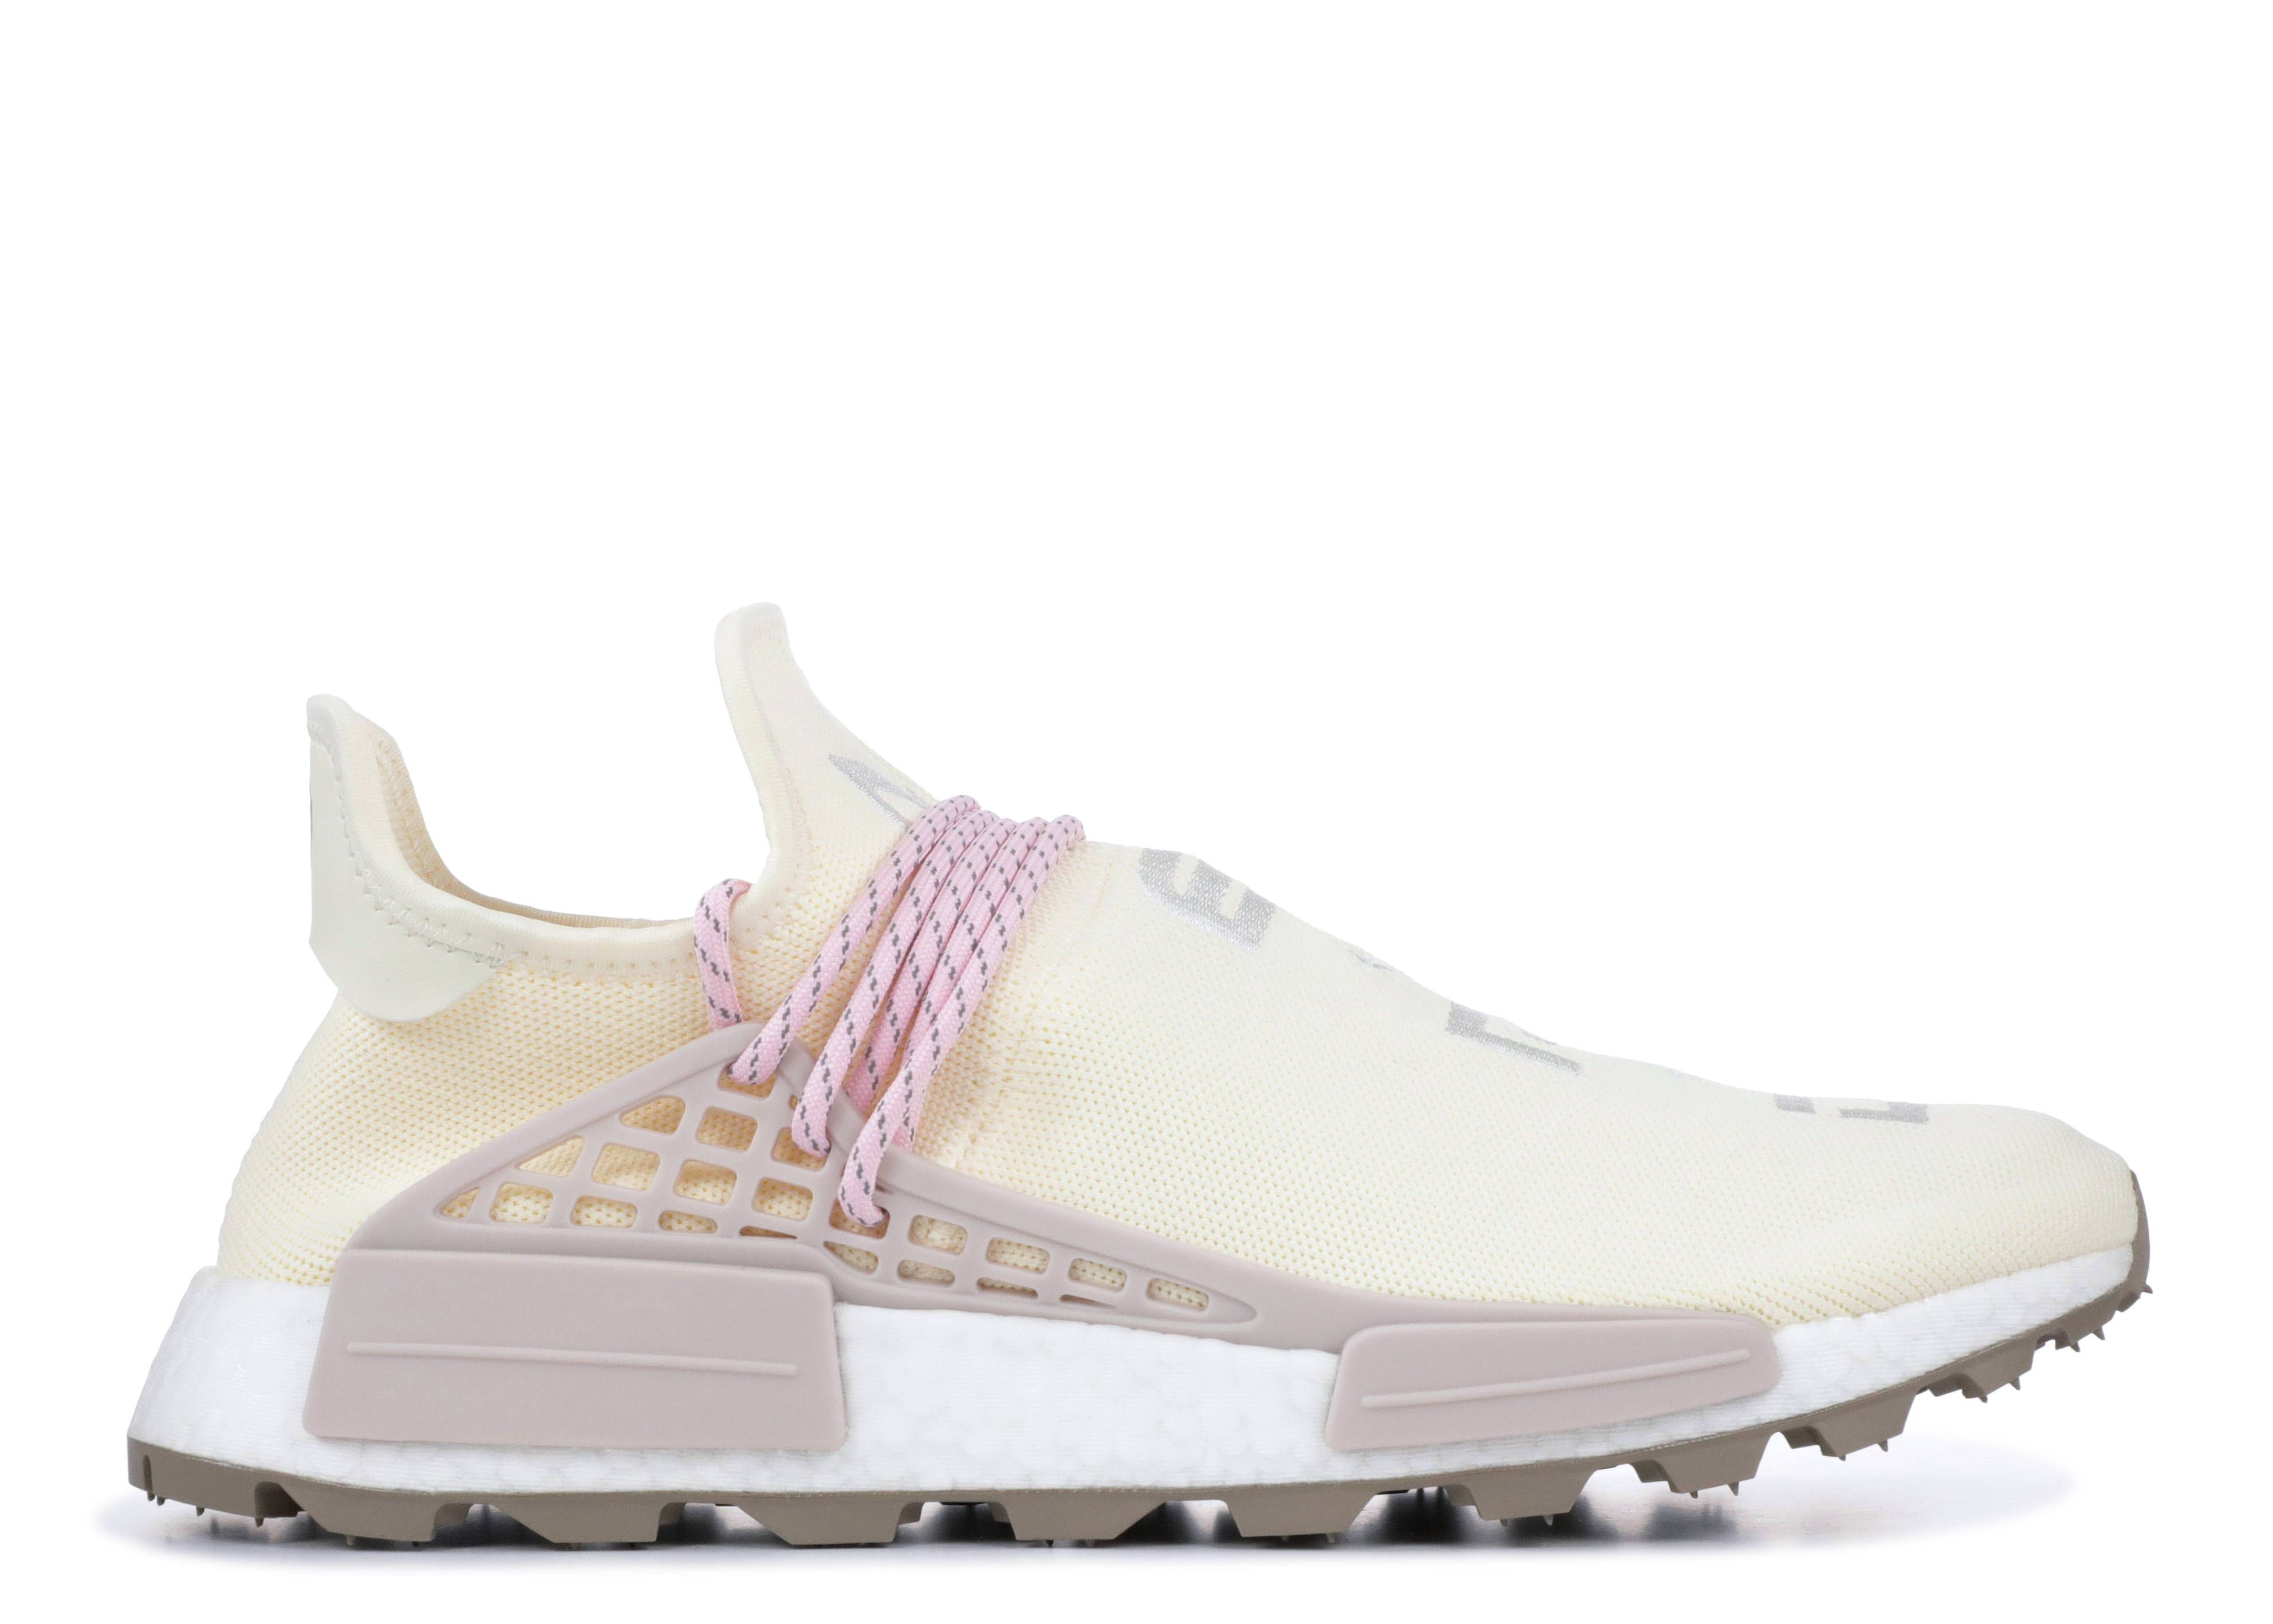 super popular 1260f 16ef1 ADIDAS PW HUMAN RACE NMD TR